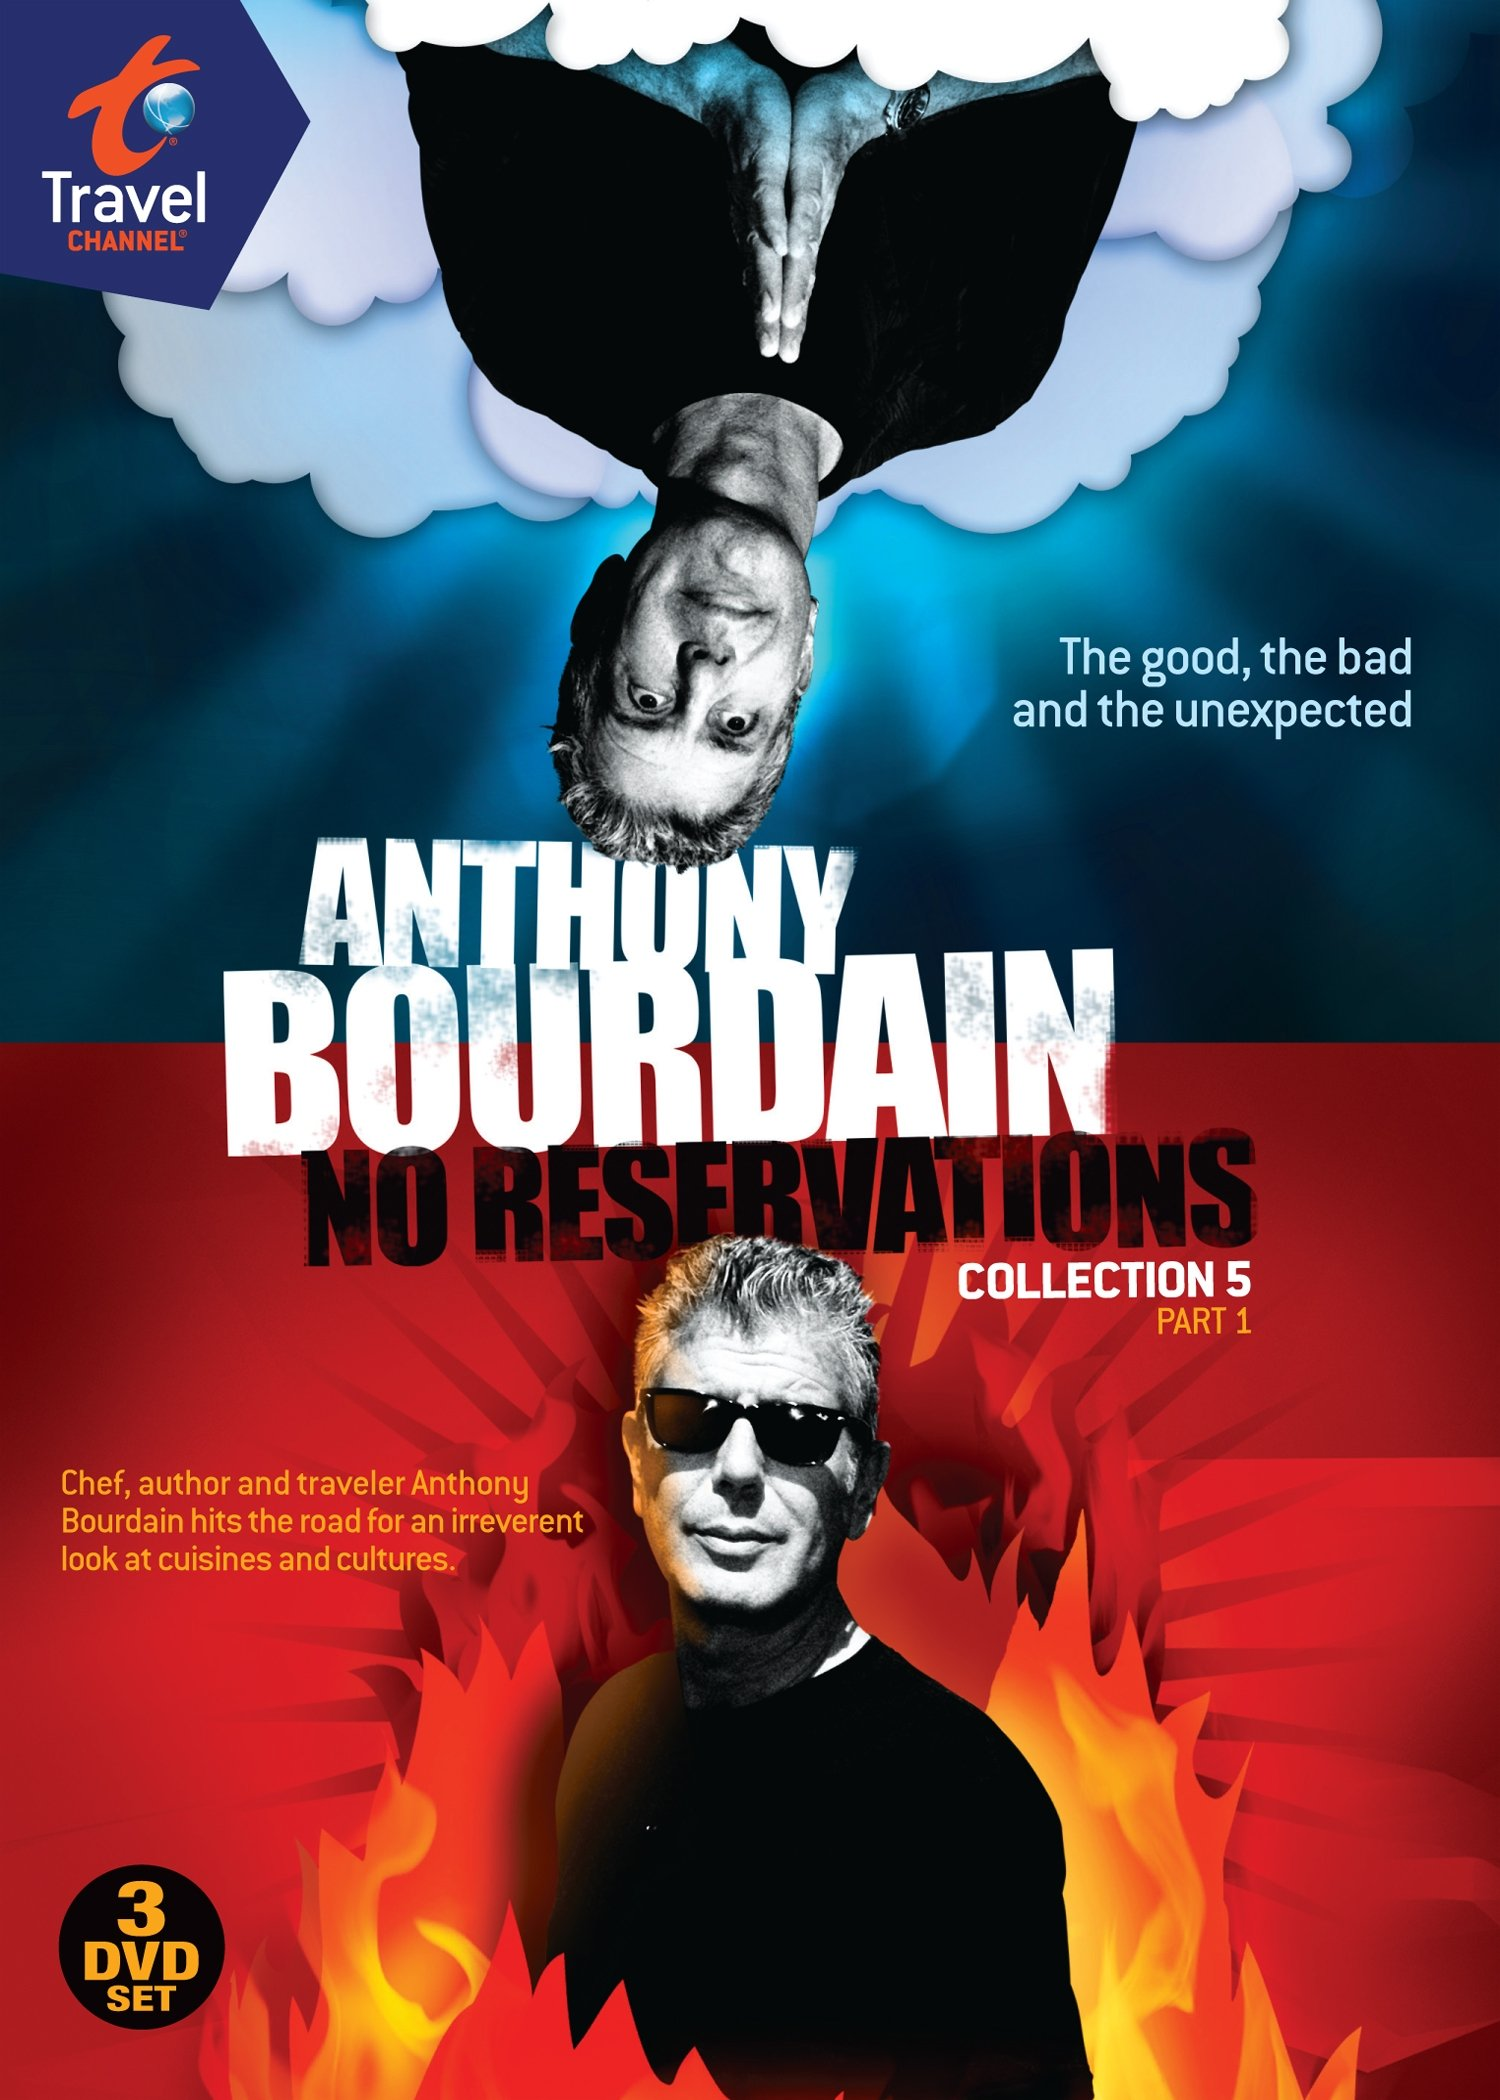 Anthony Bourdain: No Reservations Collection 5 Part 1